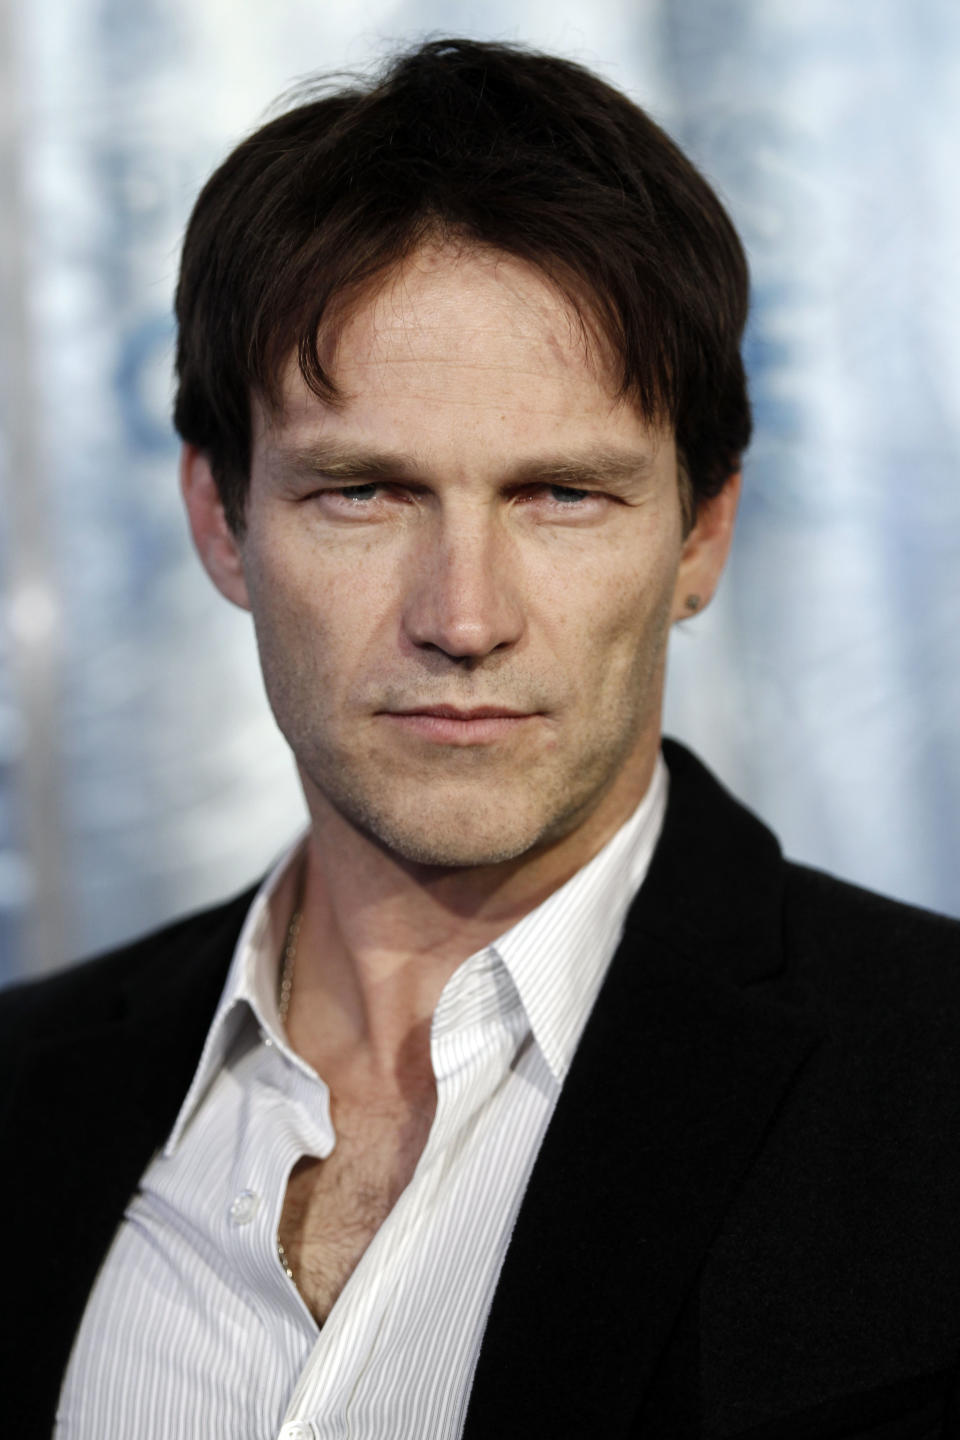 Stephen Moyer arrives at the People's Choice Awards on Wednesday, Jan. 5, 2011, in Los Angeles. (AP Photo/Matt Sayles)